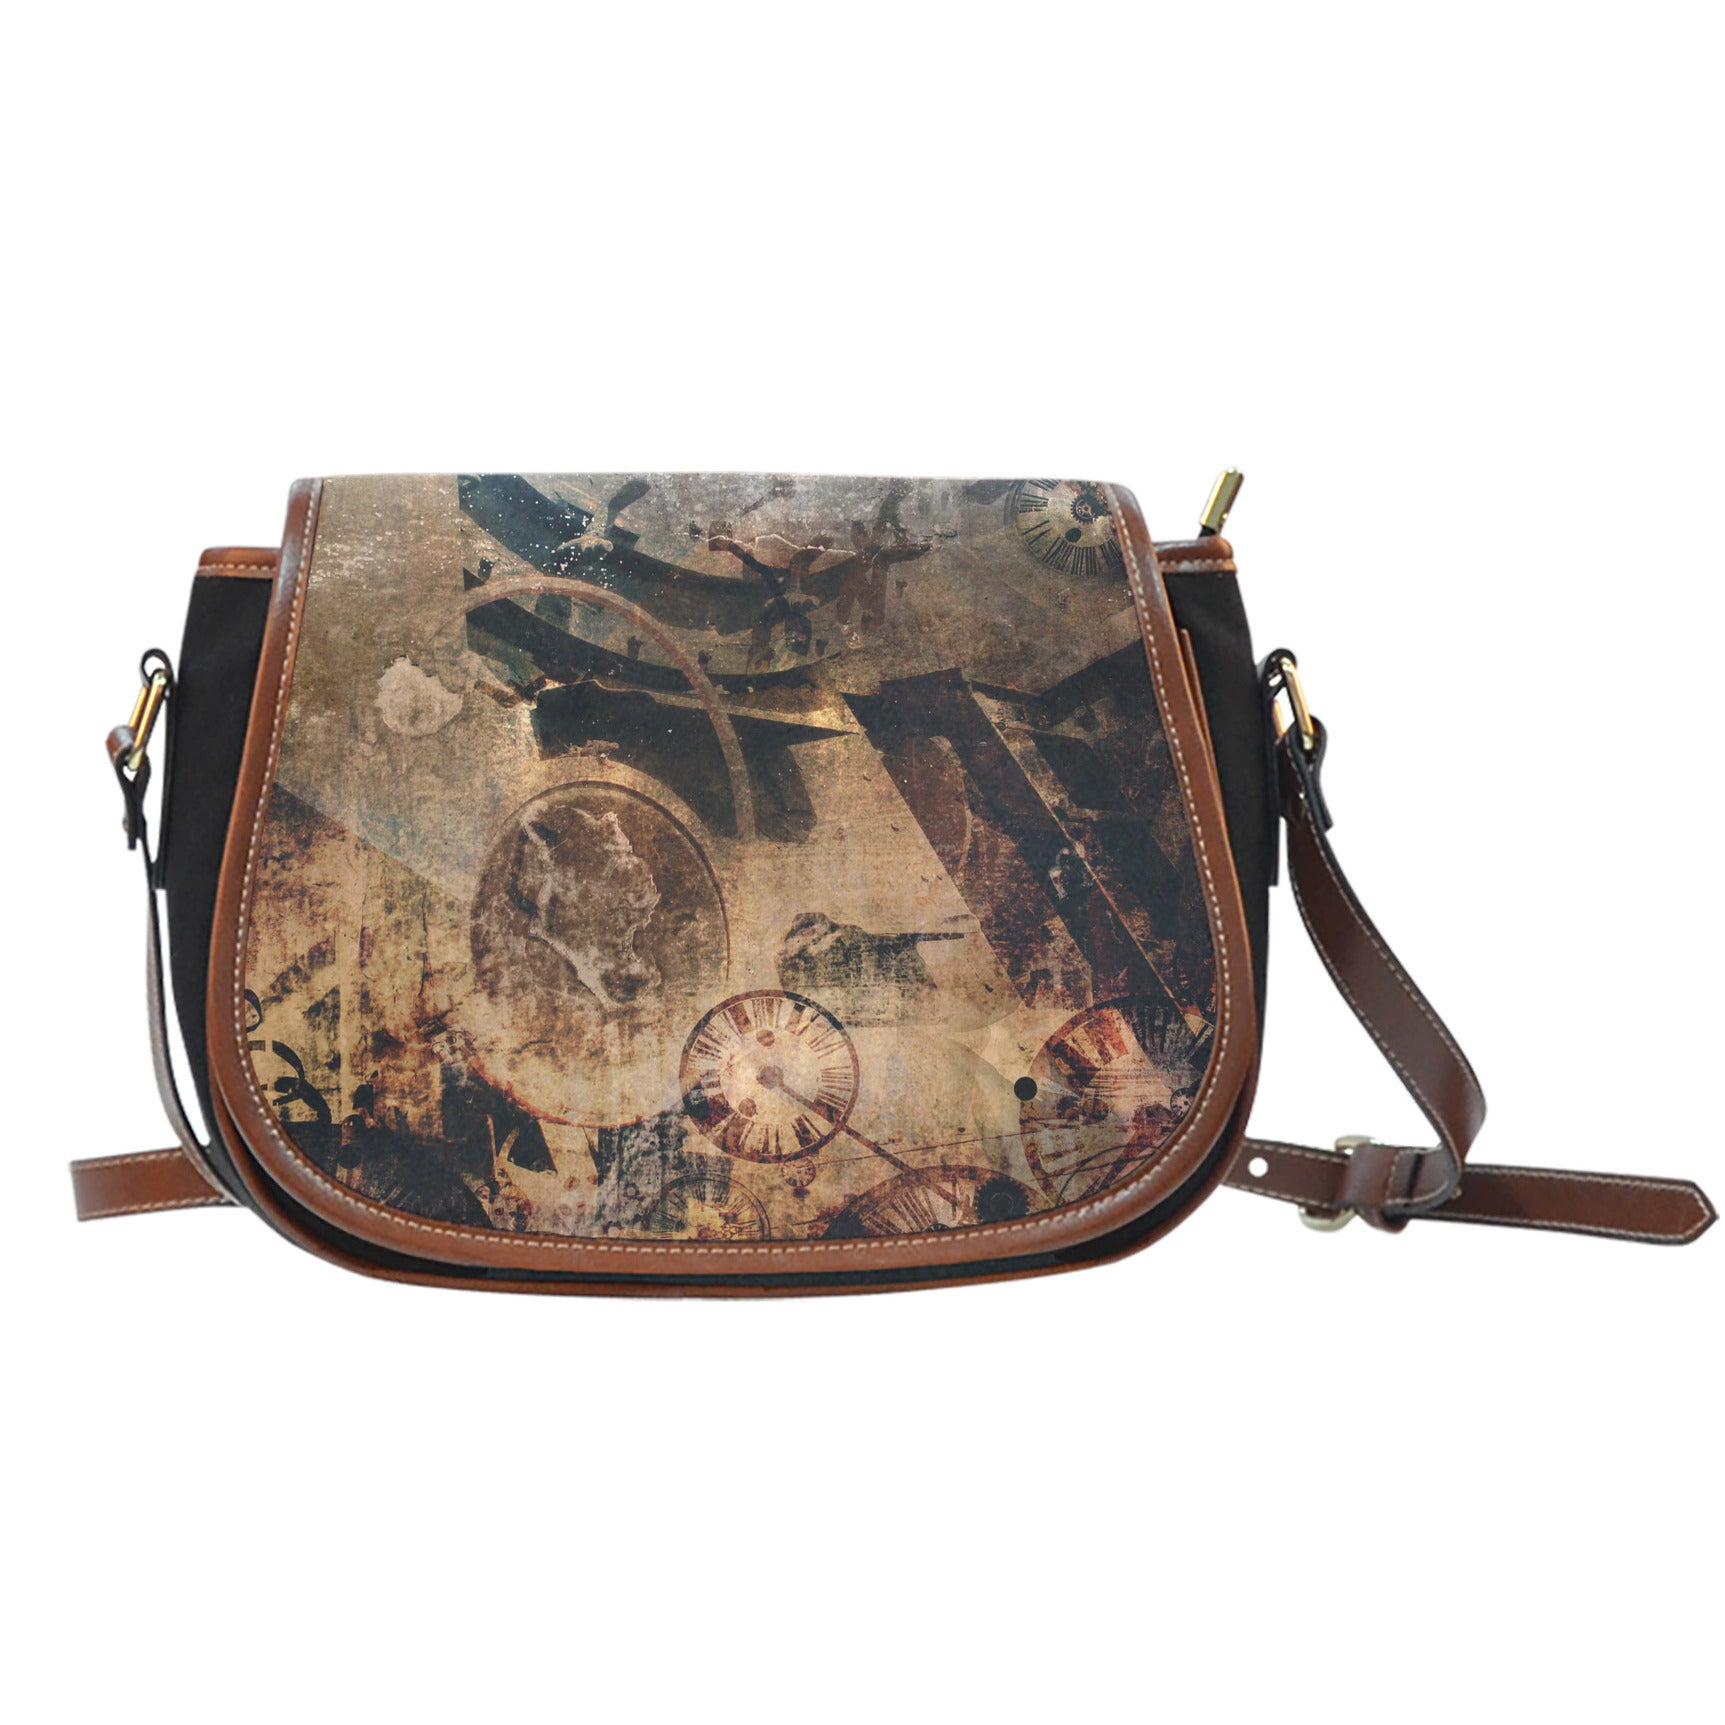 Steampunk Art Saddle Bag - Hello Moa